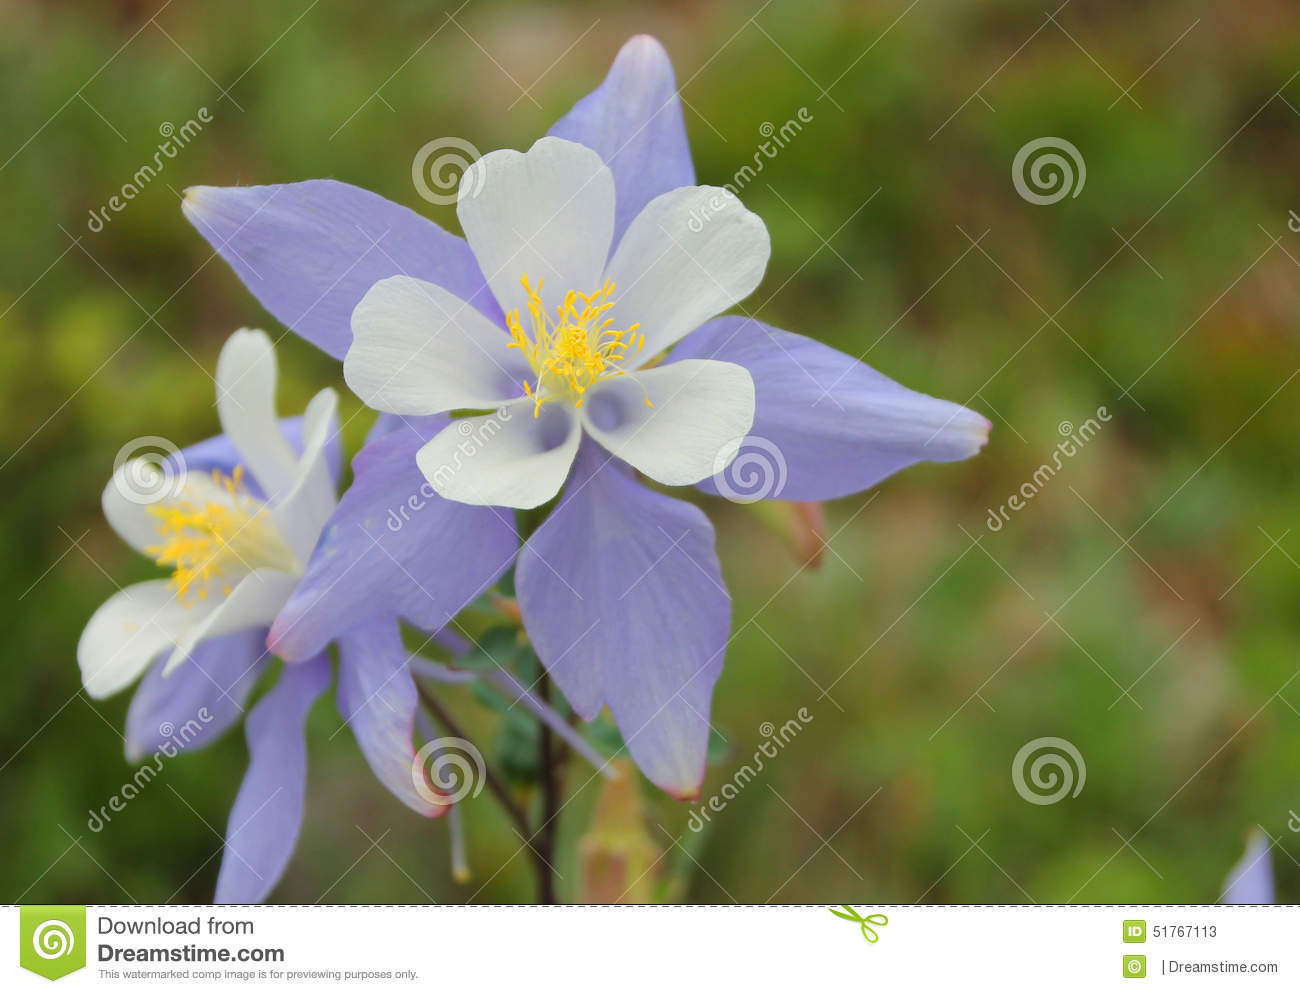 Columbine flower stock image image of beautiful blue 51767113 download columbine flower stock image image of beautiful blue 51767113 izmirmasajfo